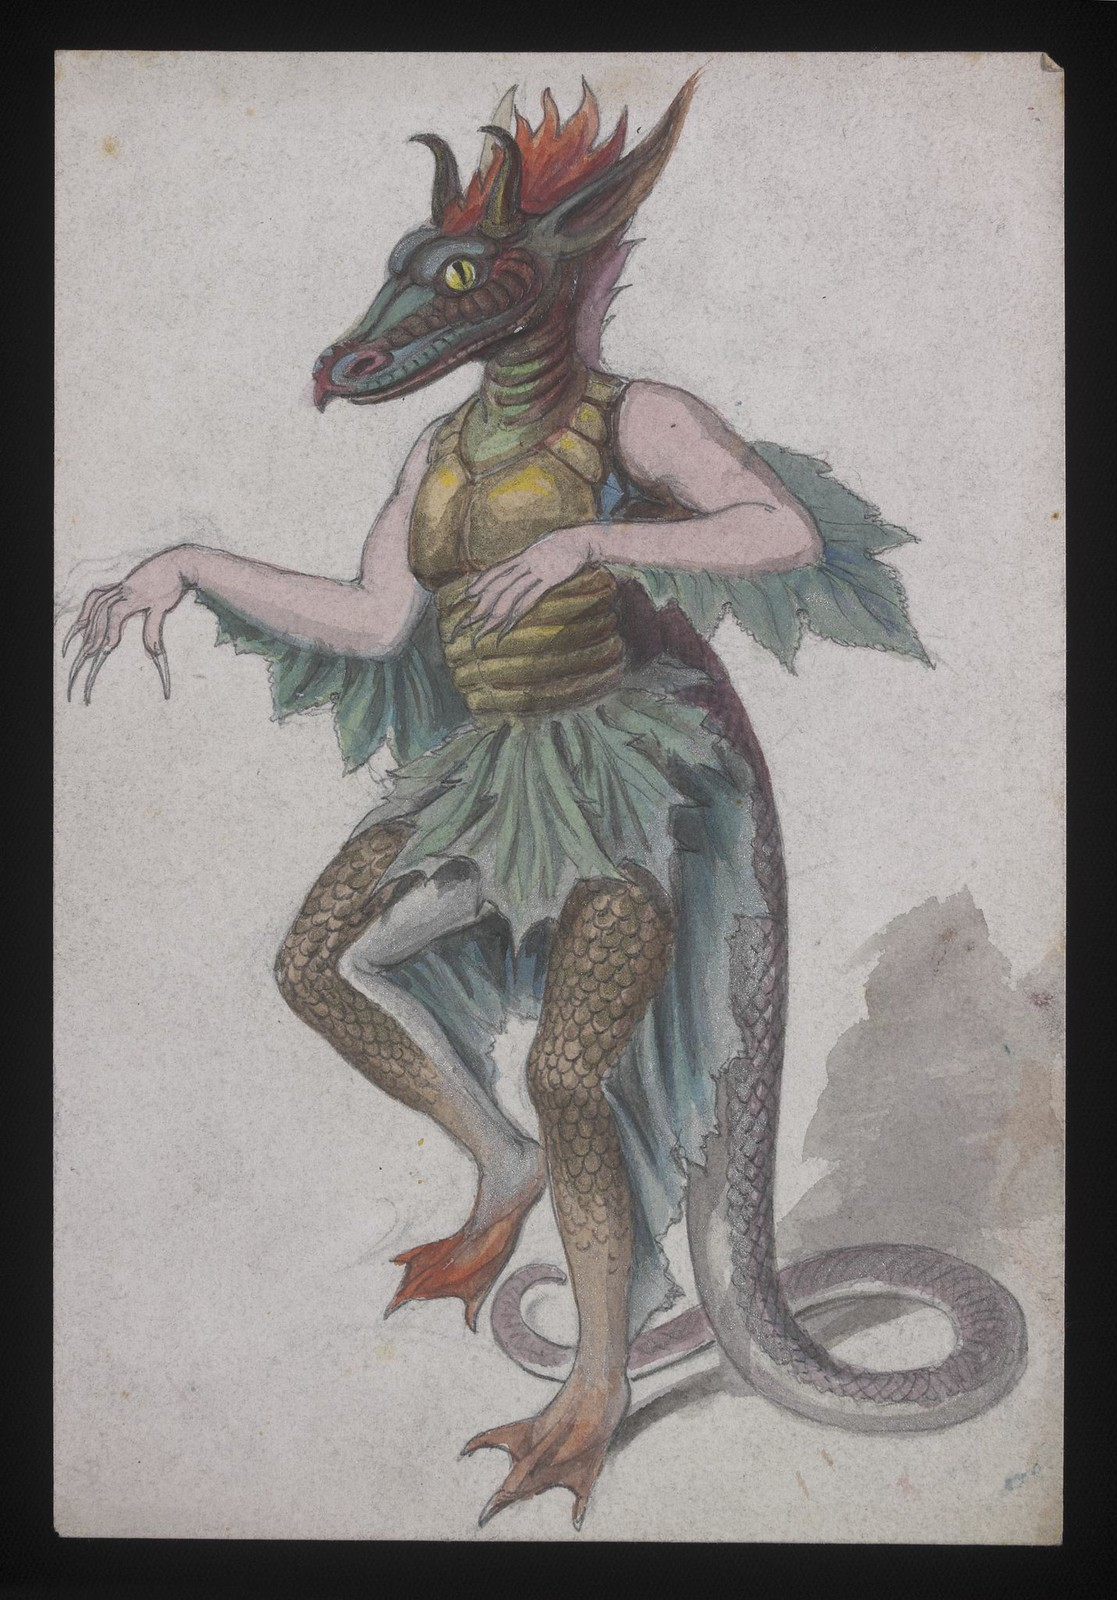 Costume Design - 04, late 19th C